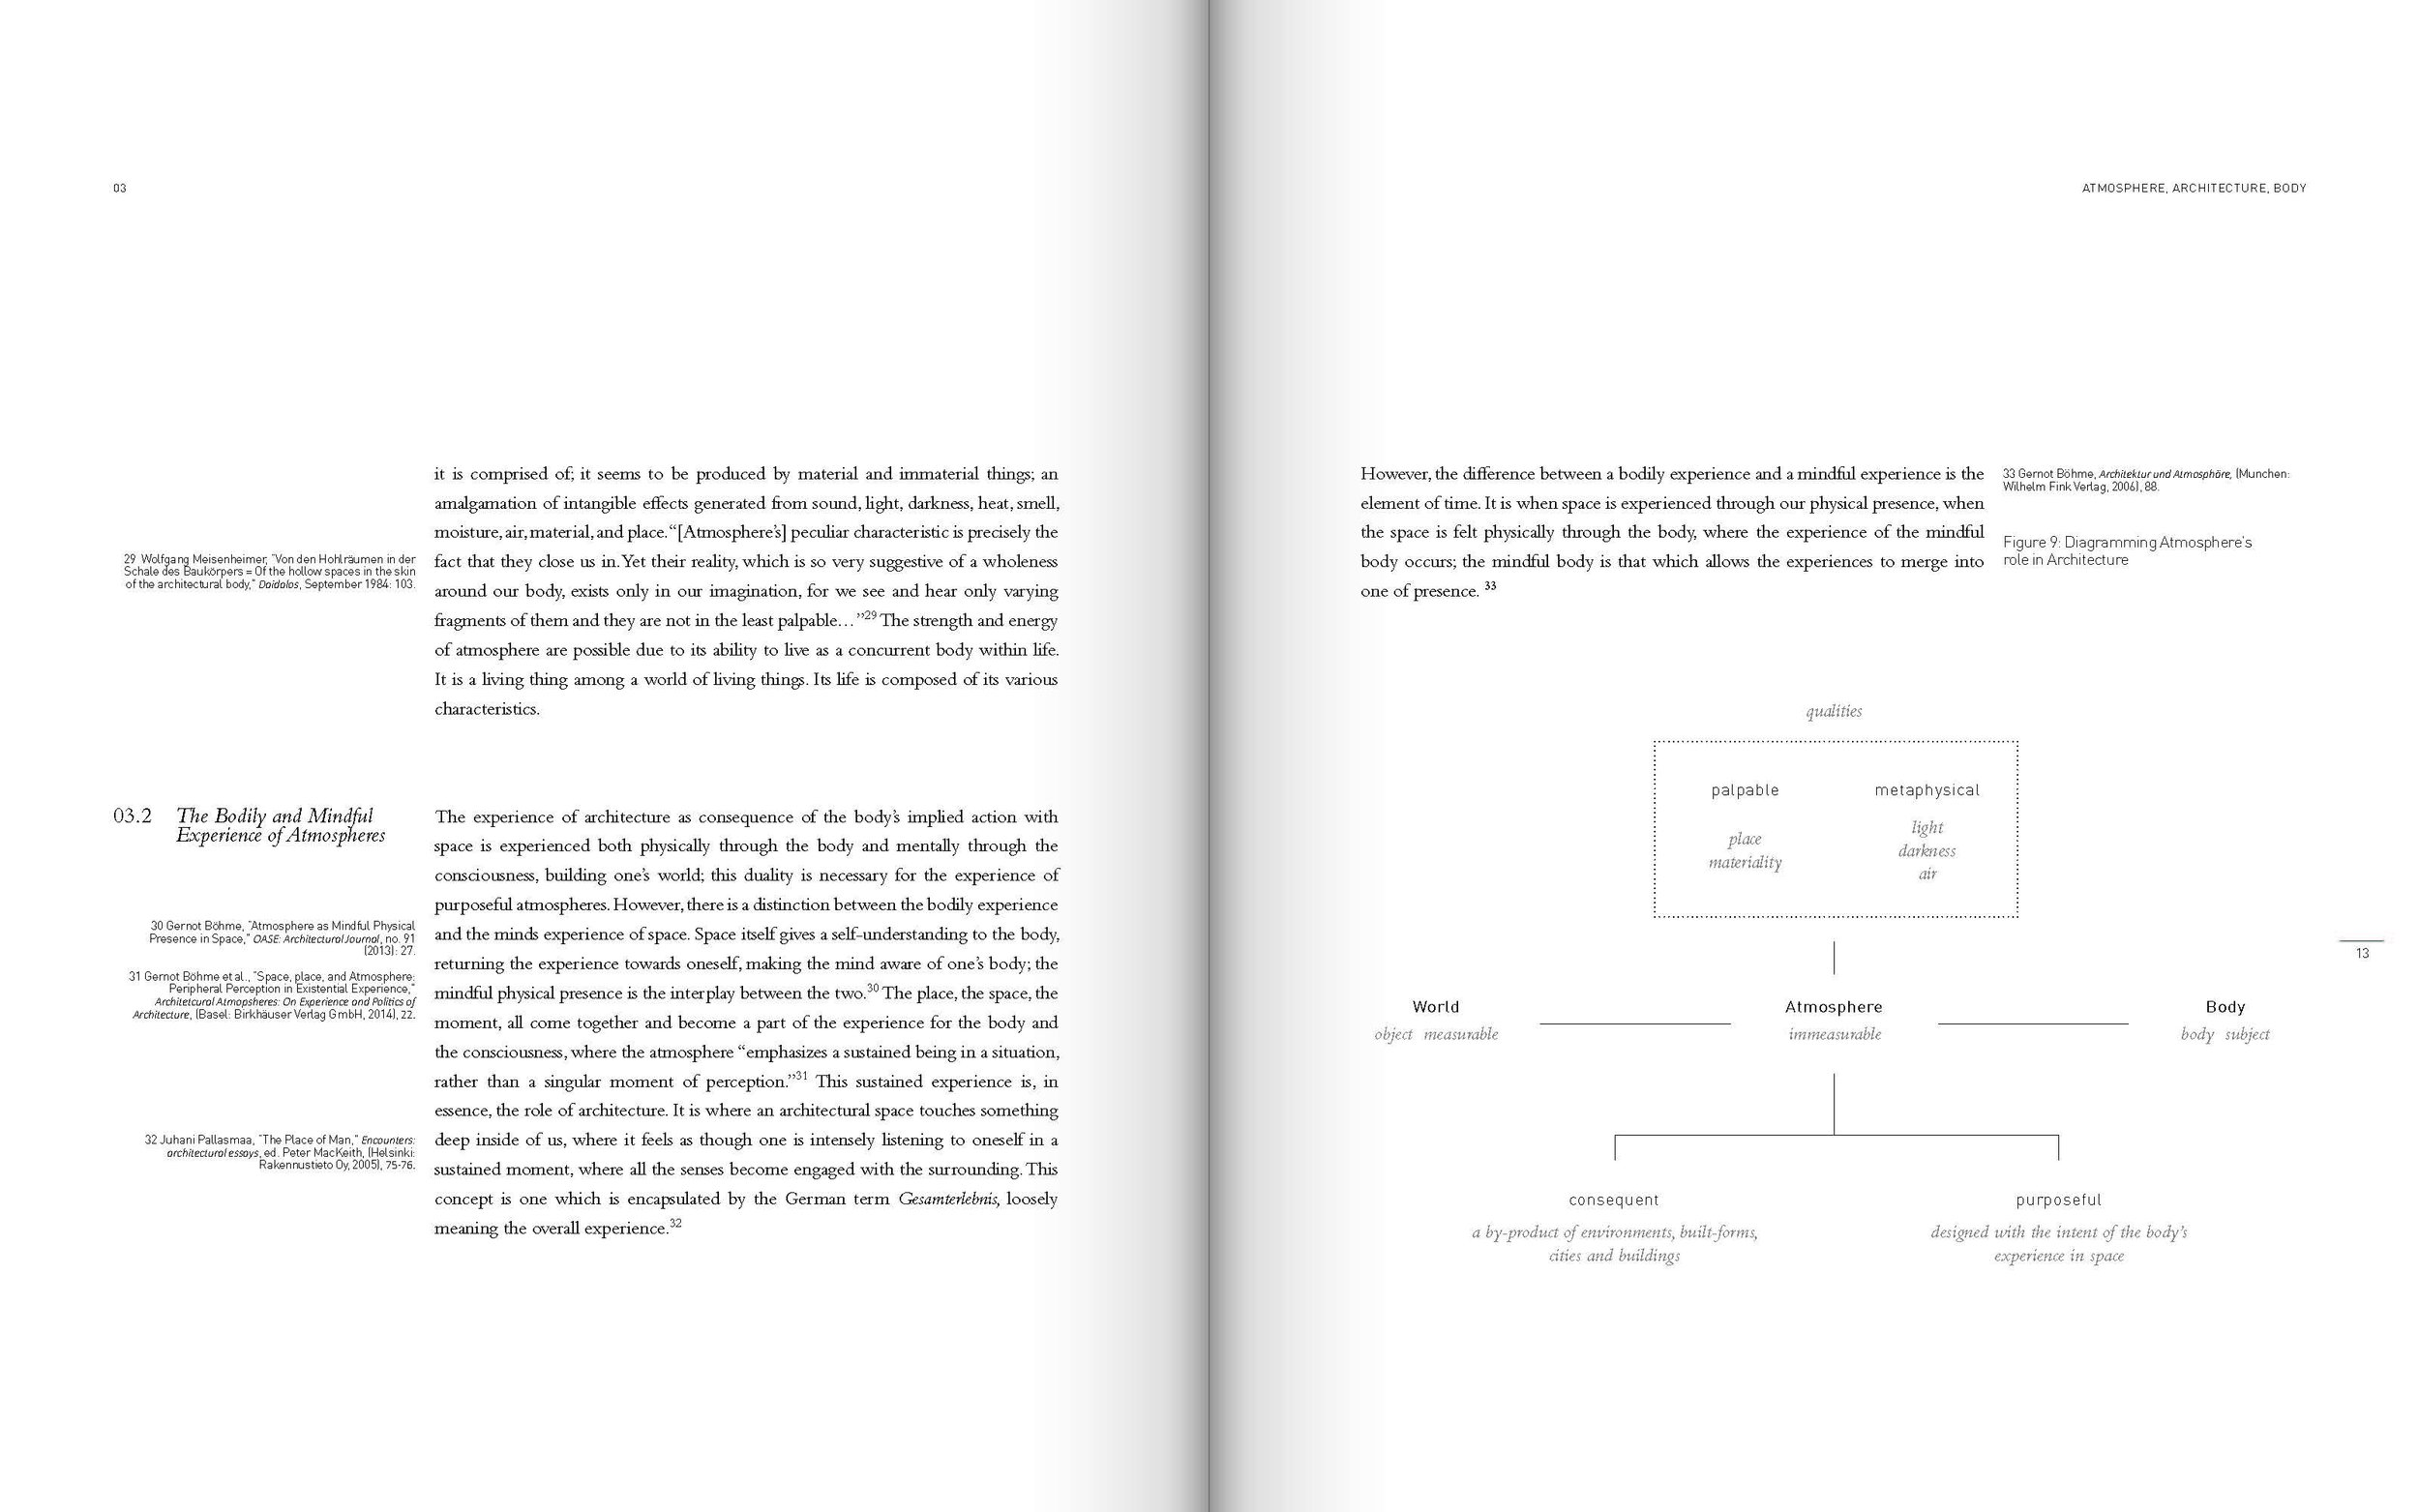 On The Corporeality of Atmosphere_J Walker_Paul Spreads w seam_Page_06.jpg